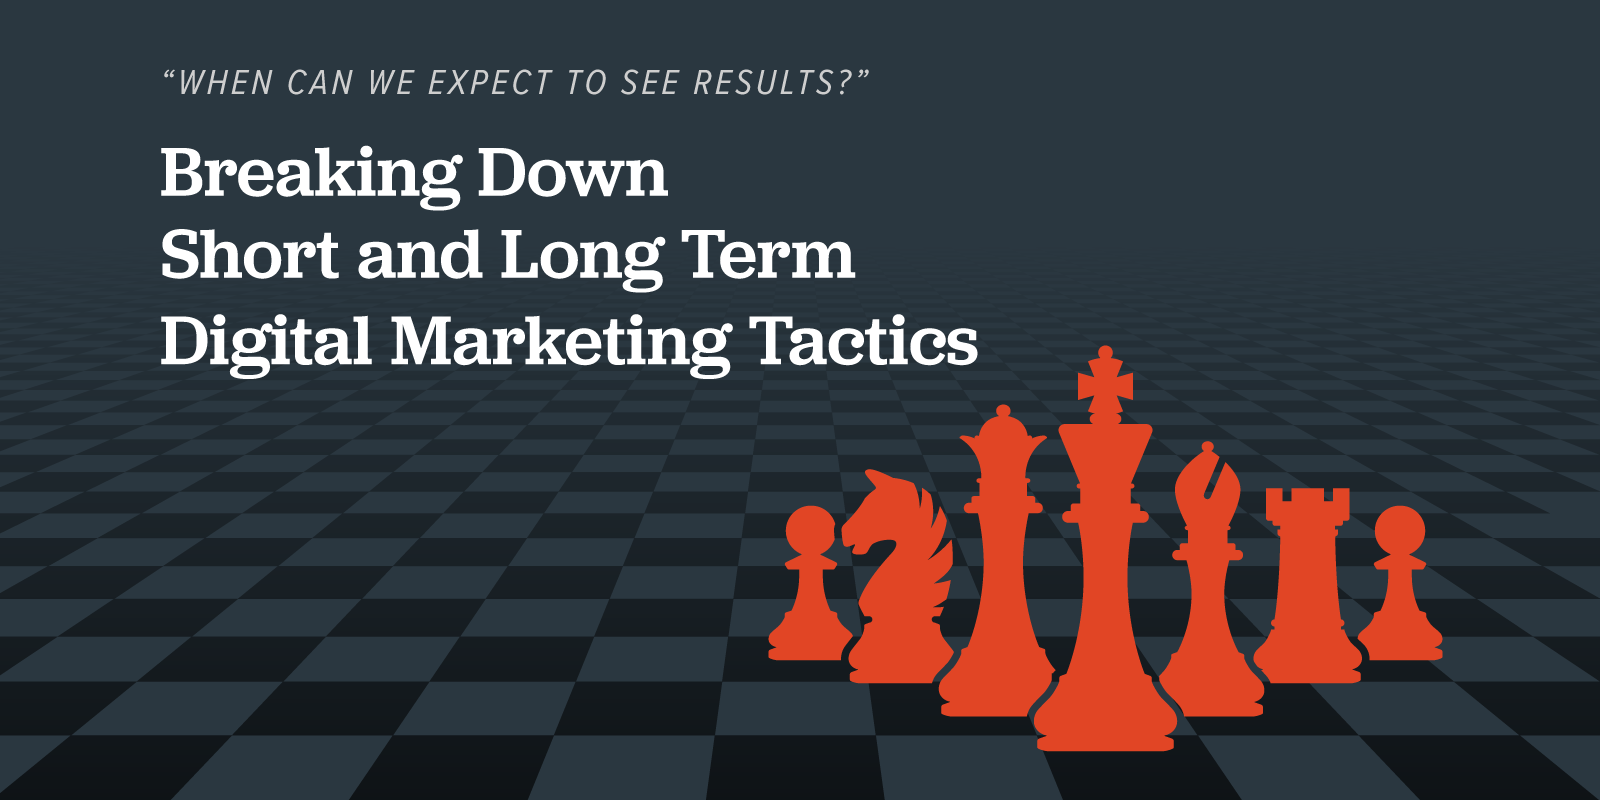 Breaking down short and long term digital marketing tactics featured image of chess